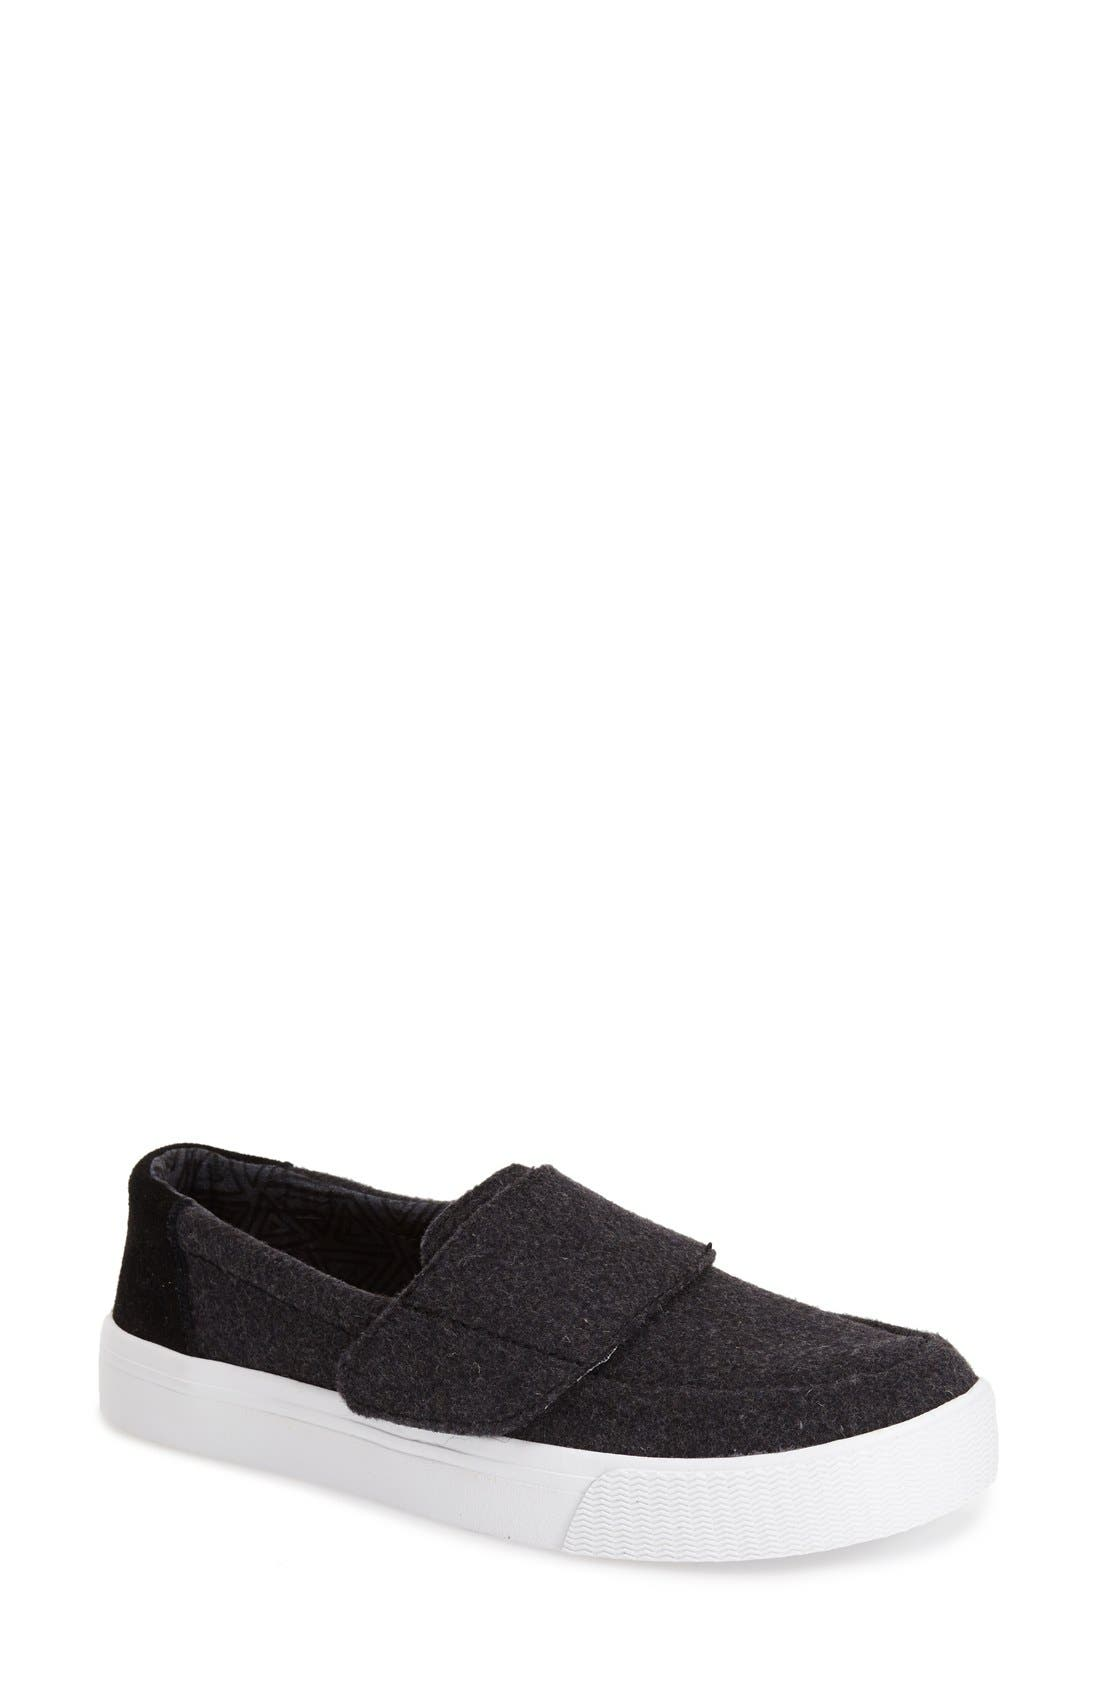 Alternate Image 1 Selected - TOMS 'Altair' Felt Suede Slip On (Women)